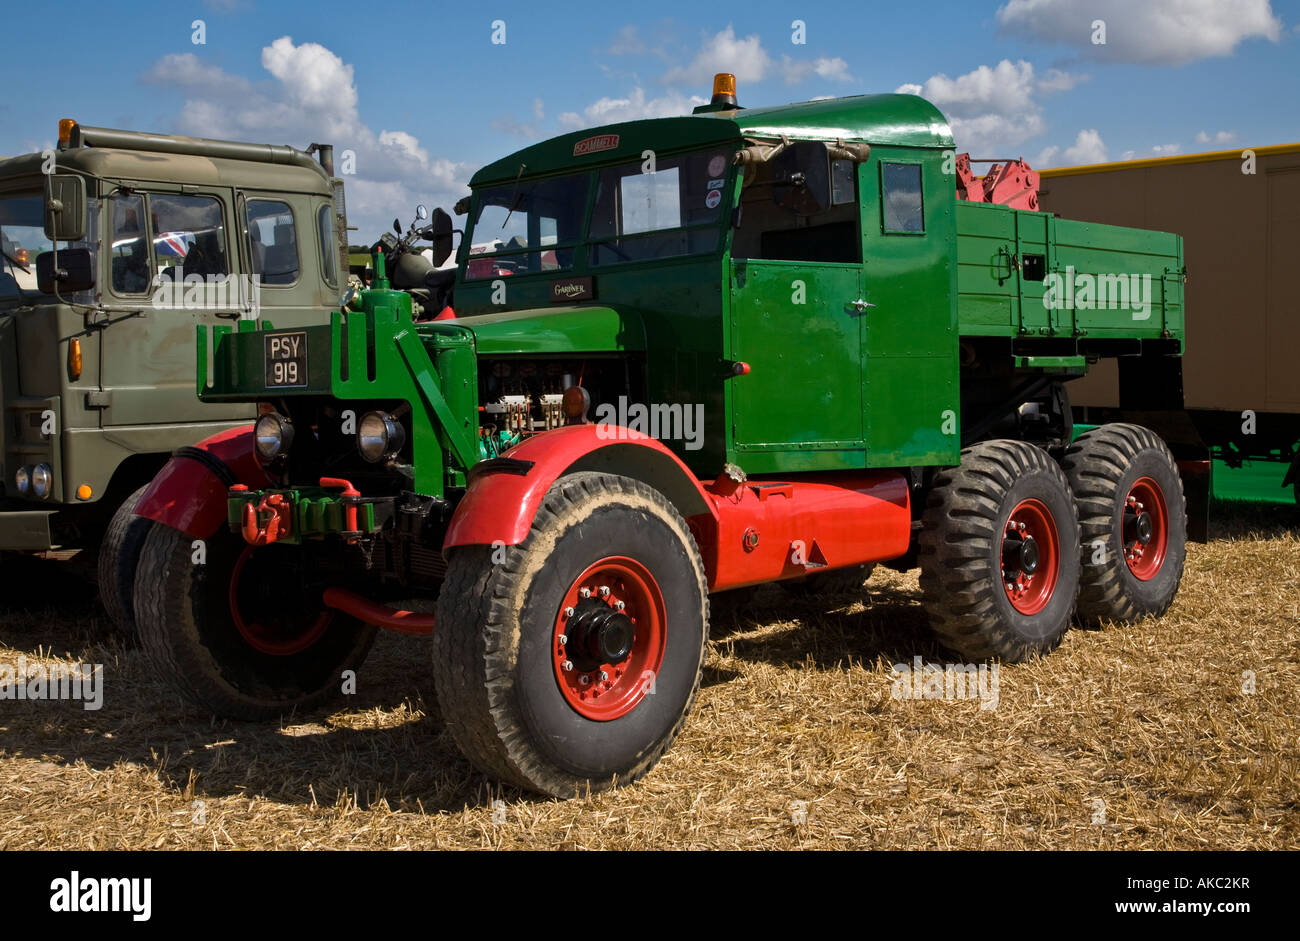 1945 Scammell SV/2s Recovery truck Deliverance, Reg No. PSY 919, at the Great Dorset Steam Fair, England, UK - Stock Image